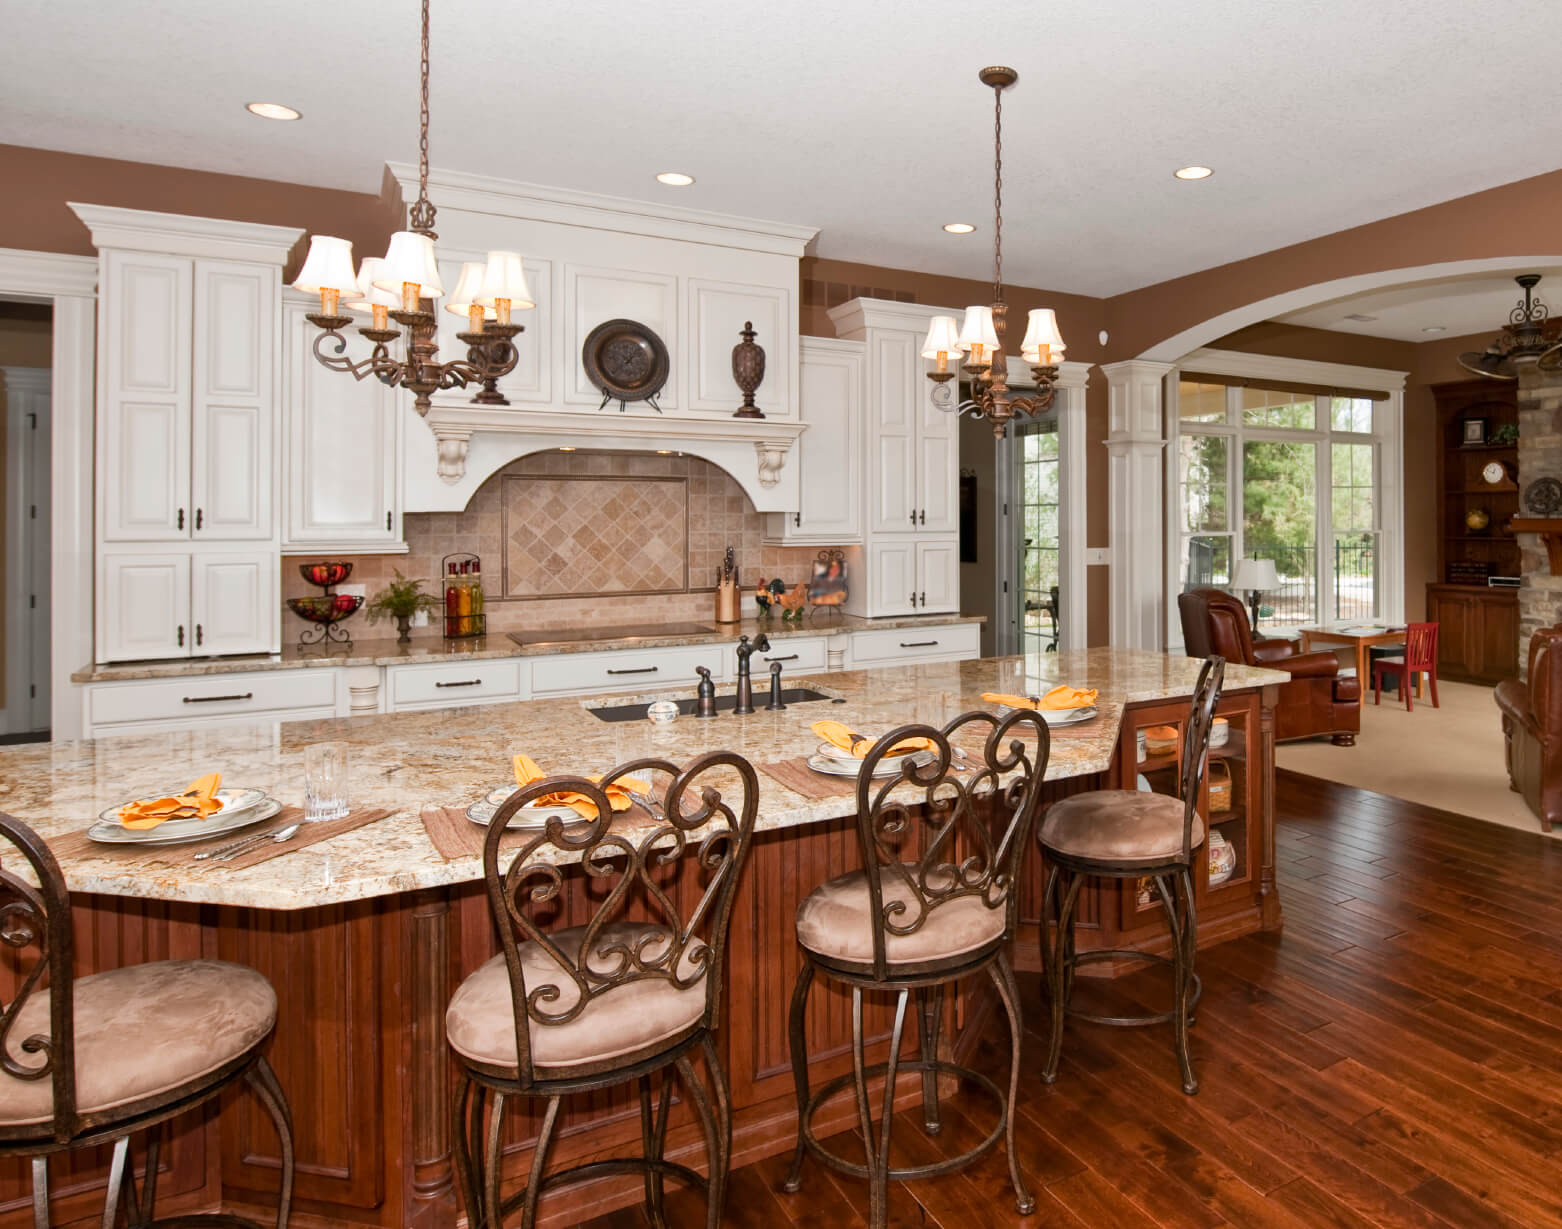 Large, open kitchen features immense island done in natural wood tones,  with built-